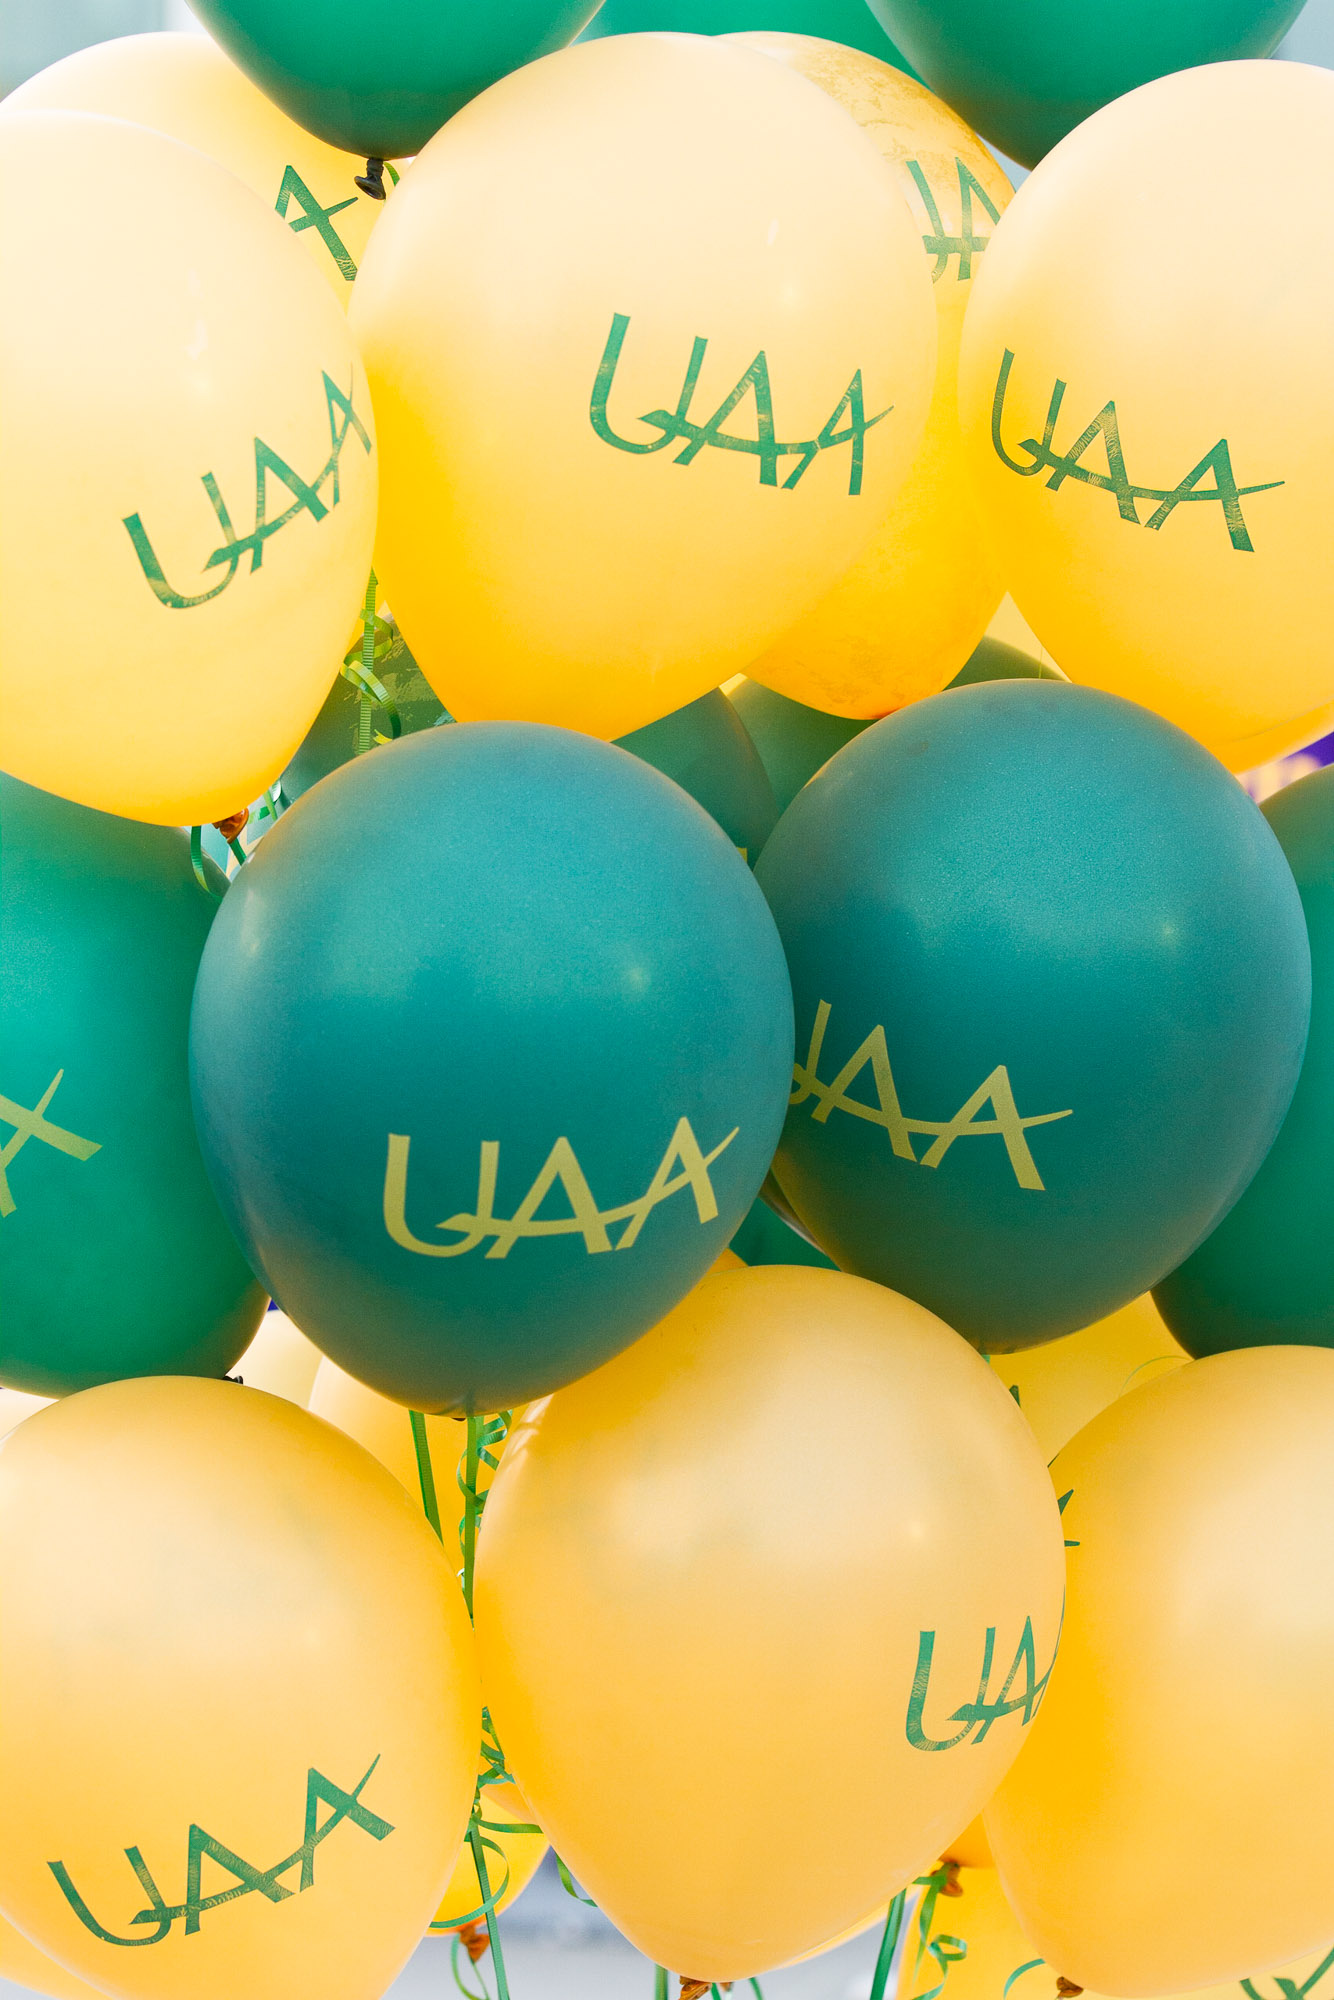 Uaa Calendar 2022.Assignment Photography For University Of Alaska Anchorage